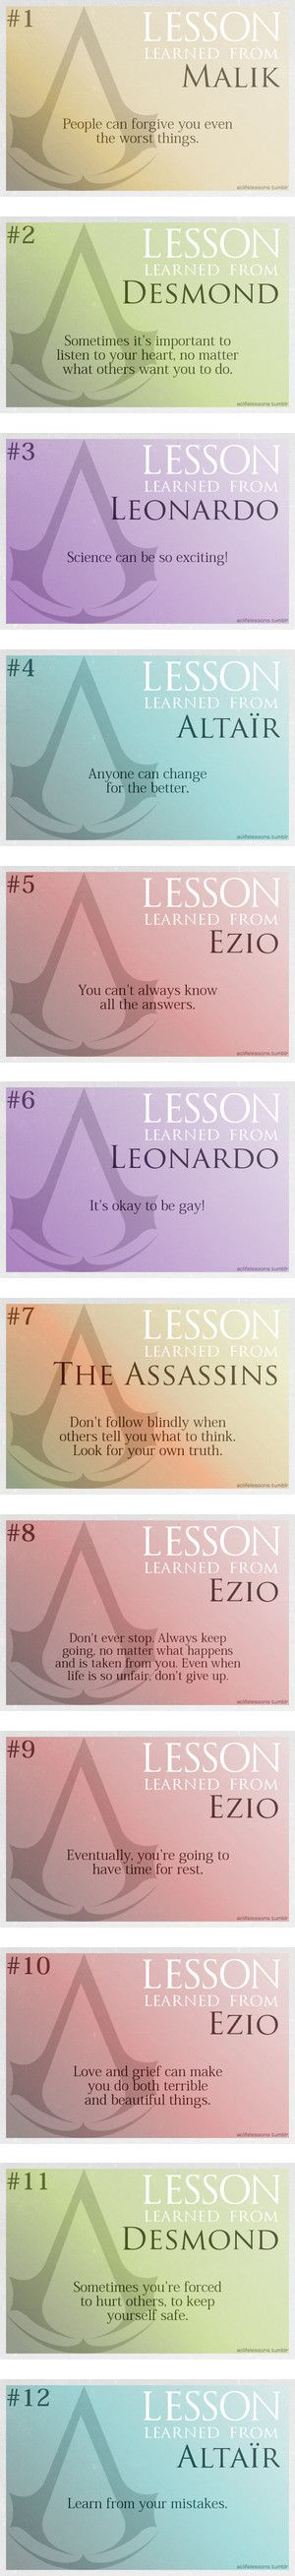 Assassin's Creed Lessons by safella on Polyvore